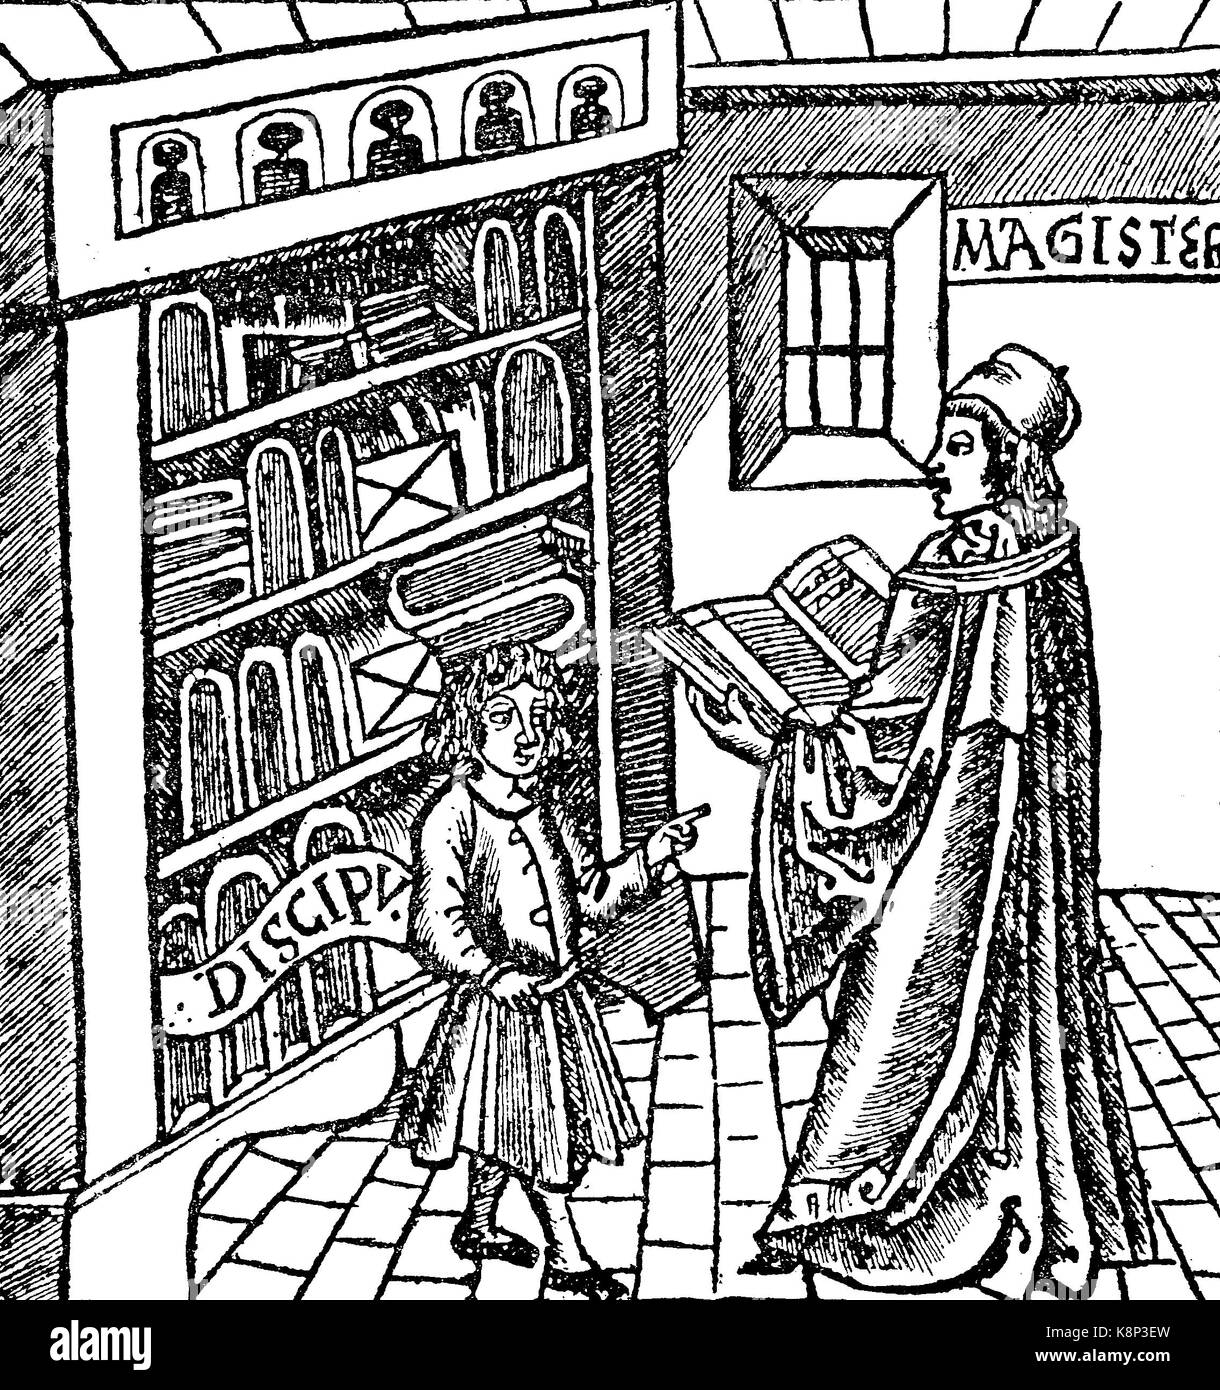 teacher and pupil, Lehrer und Schüler, aus Margarita philosophica, 1512, digital improved reproduction of a woodcut, Stock Photo